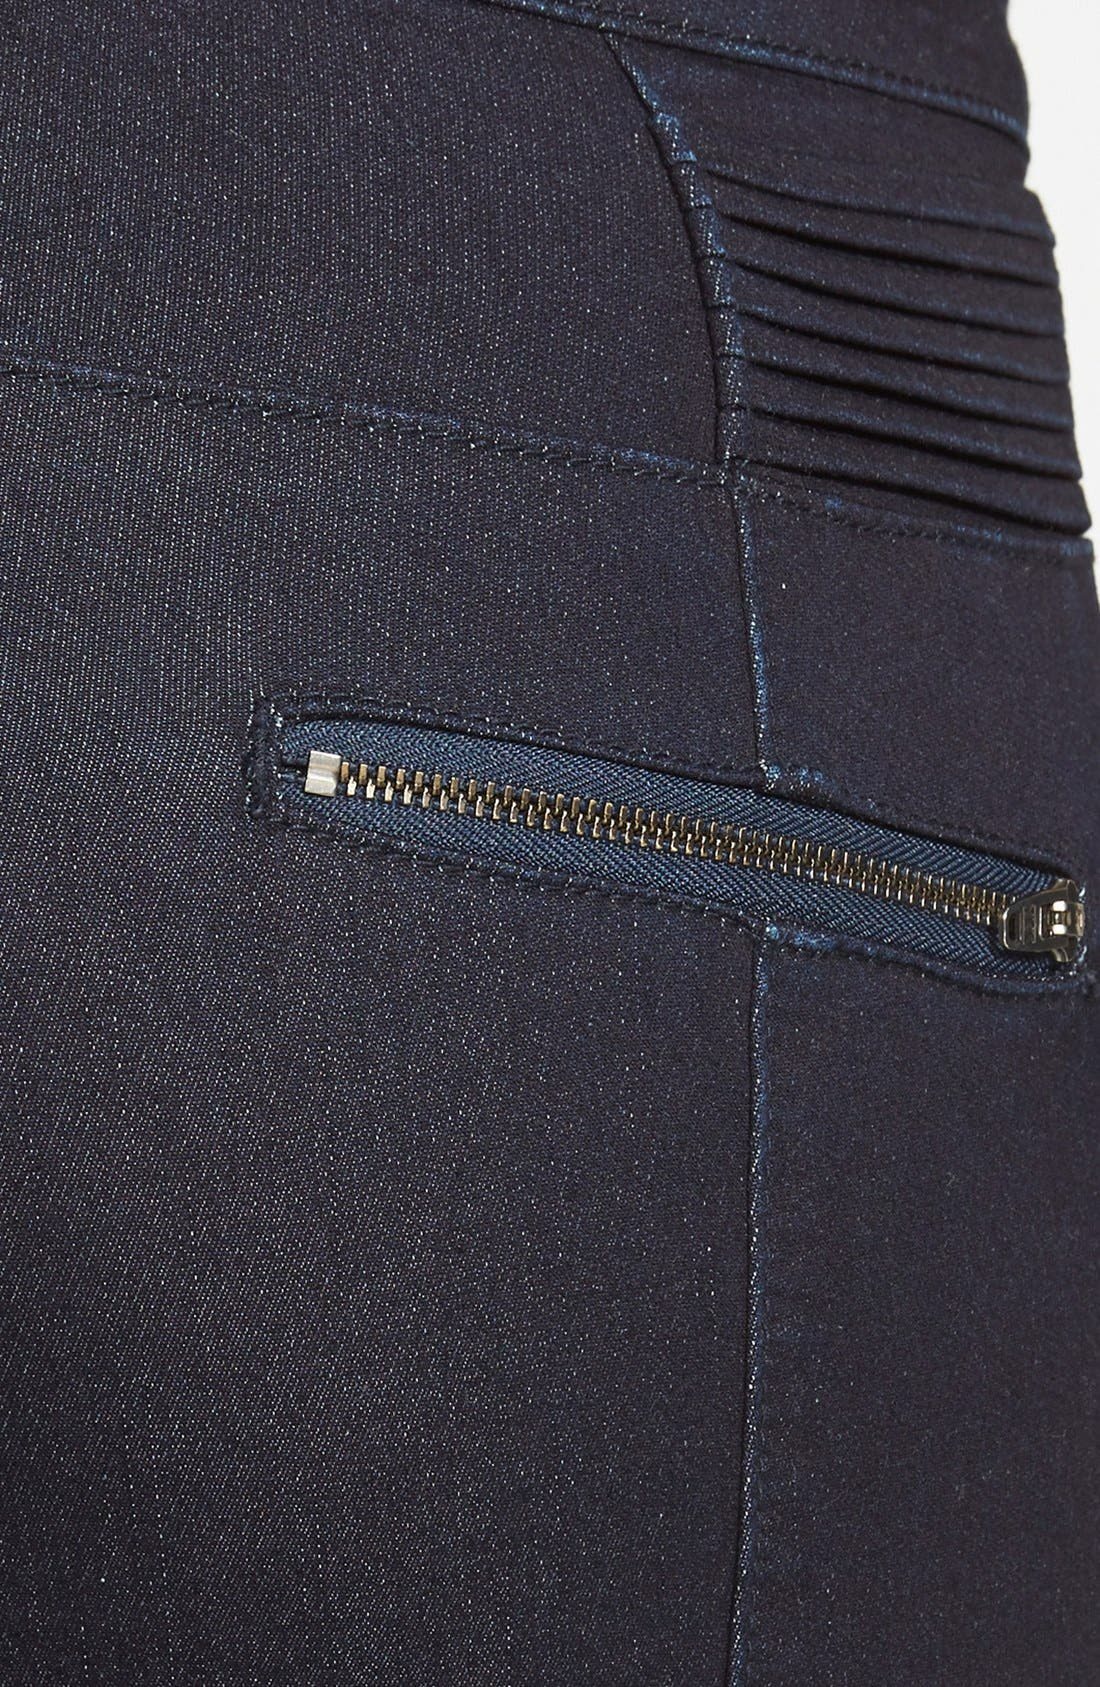 Alternate Image 3  - Standards & Practices 'Sachi' Moto Skinny Jeans (Blue) (Online Only)